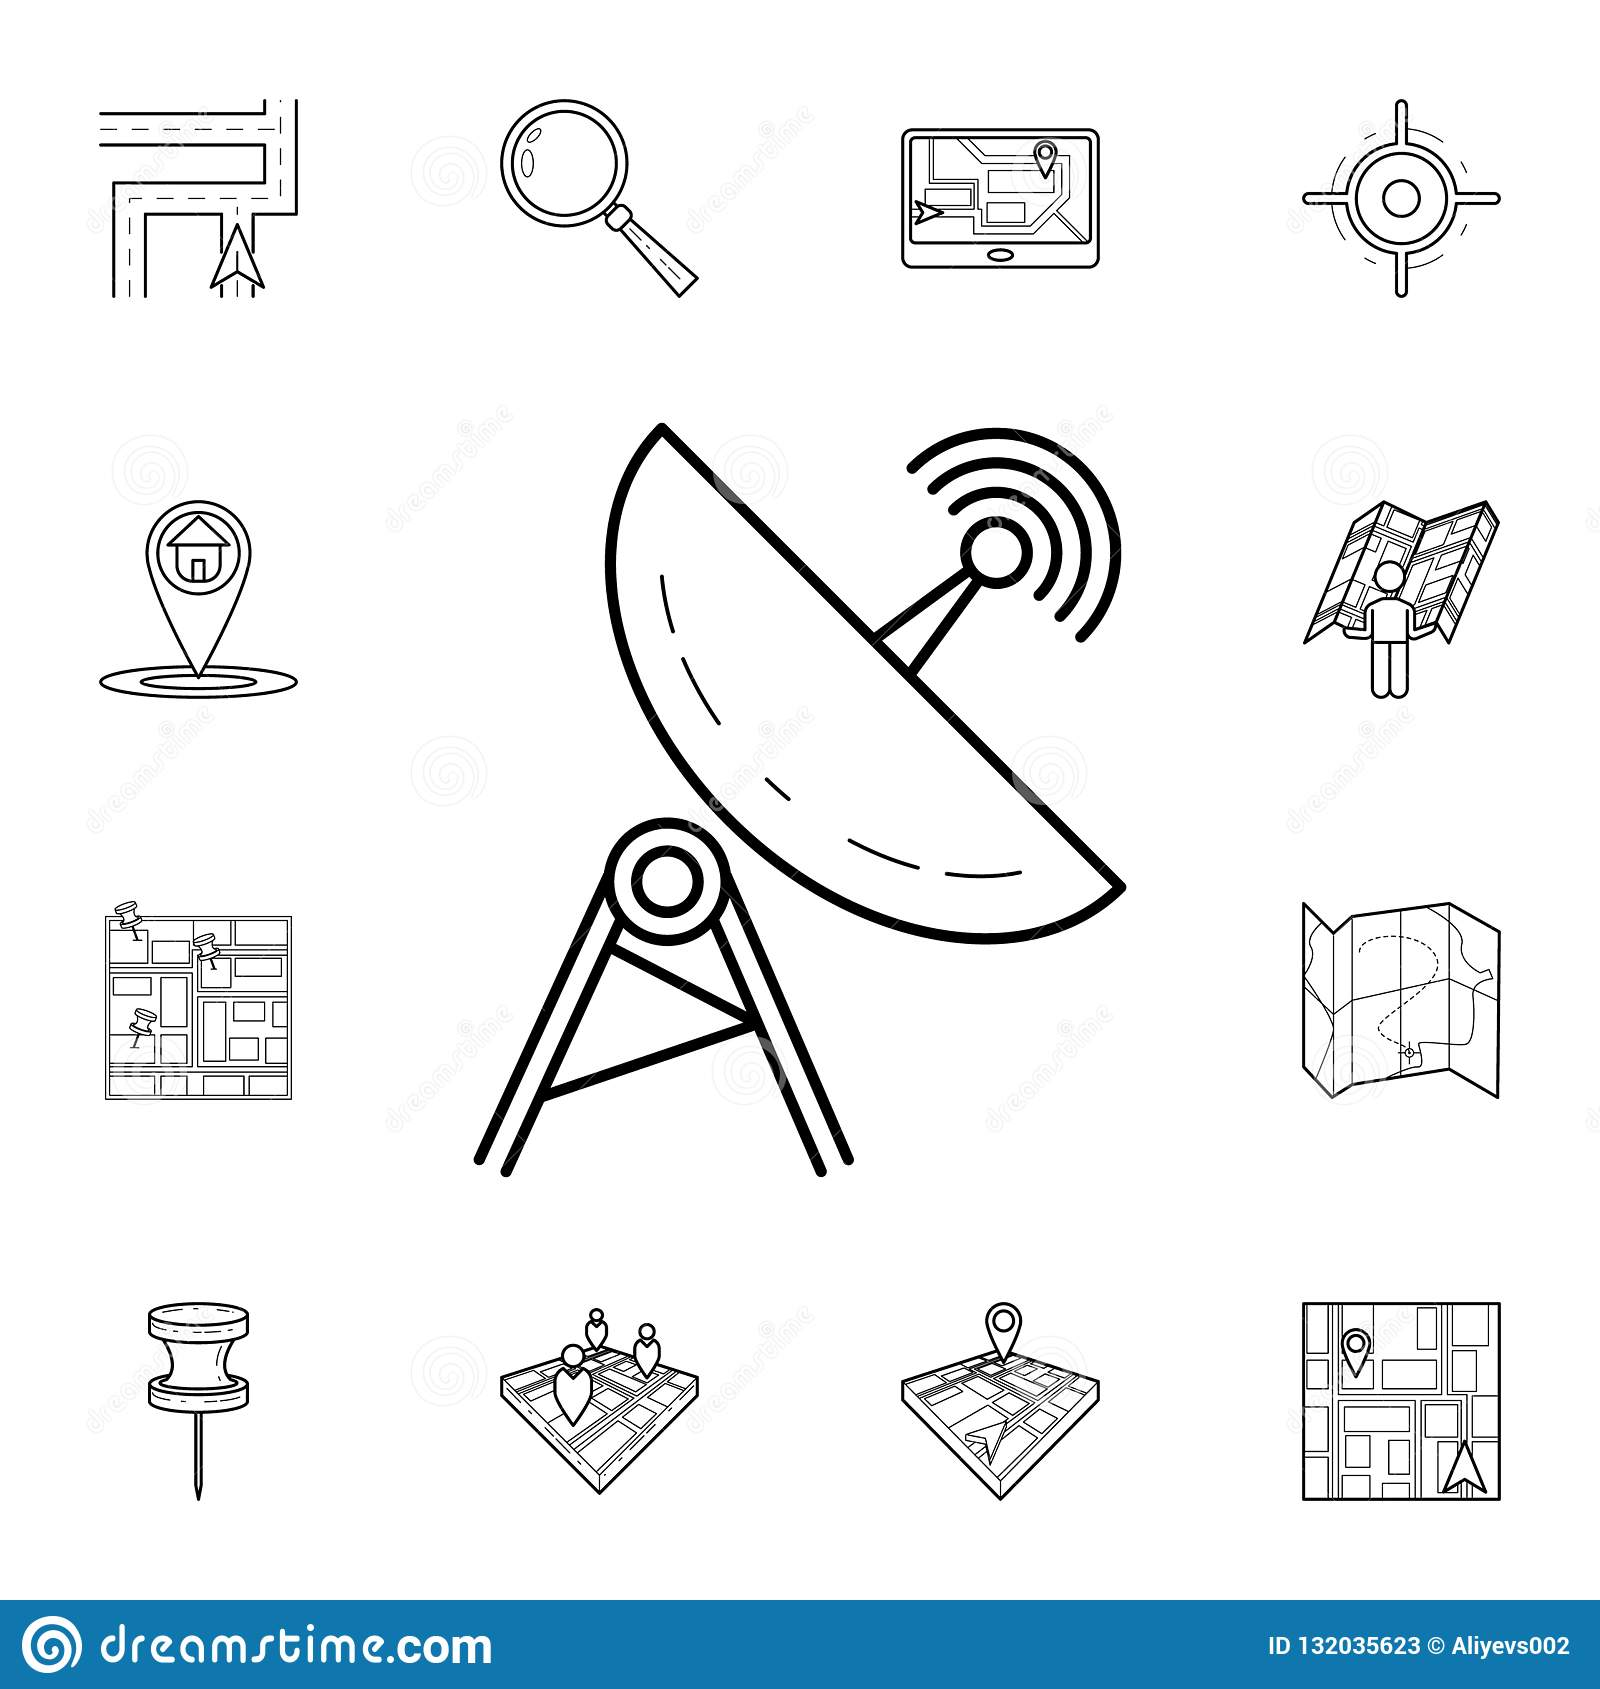 hight resolution of satellite dish icon detailed set of navigation icons premium graphic design one of